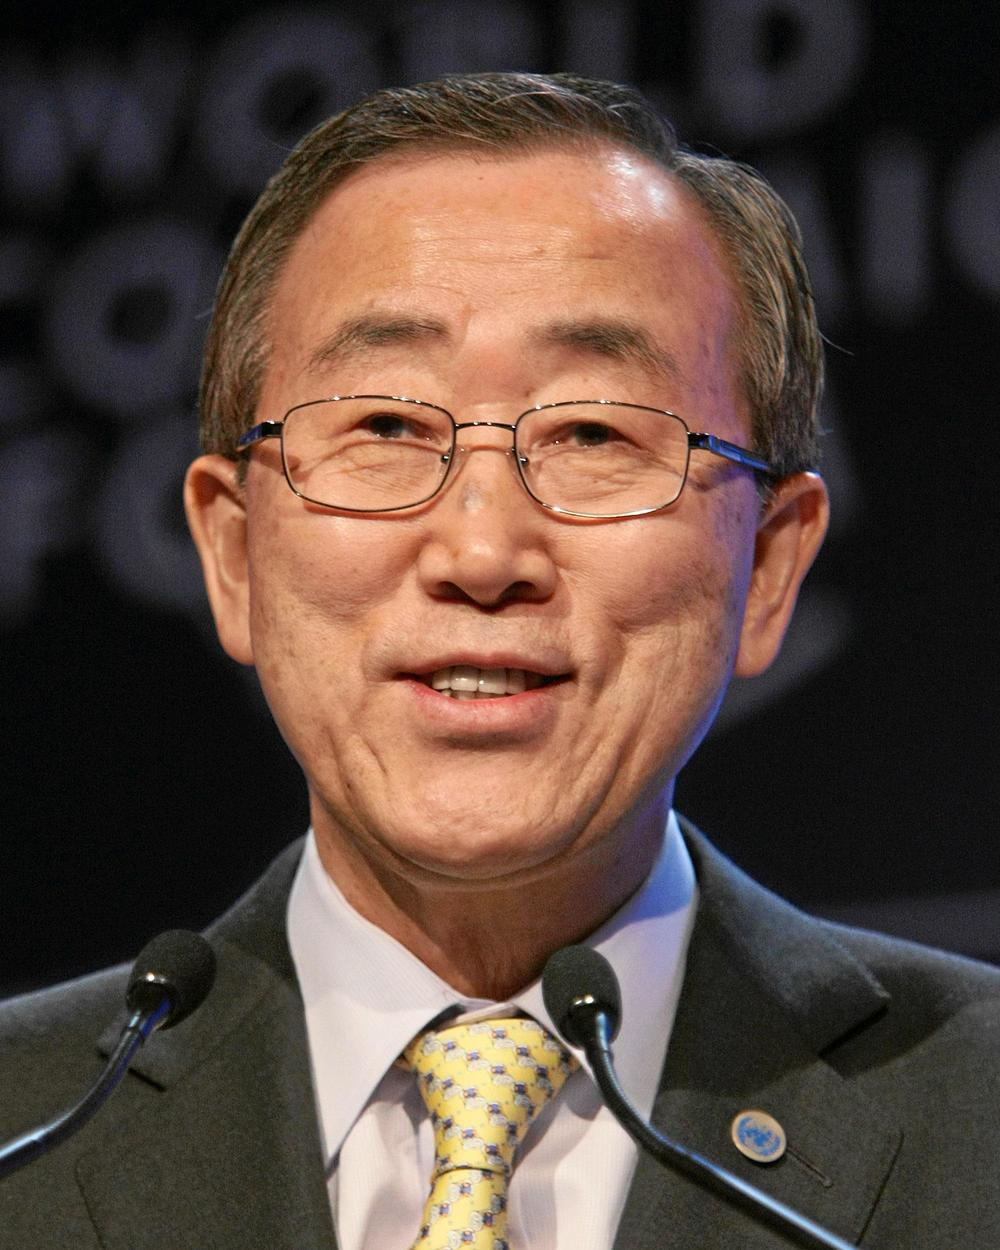 U.N. Secretary-General Ban Ki-moon backtracked on his claim that Israel suffers from U.N. bias. Credit: World Economic Forum.